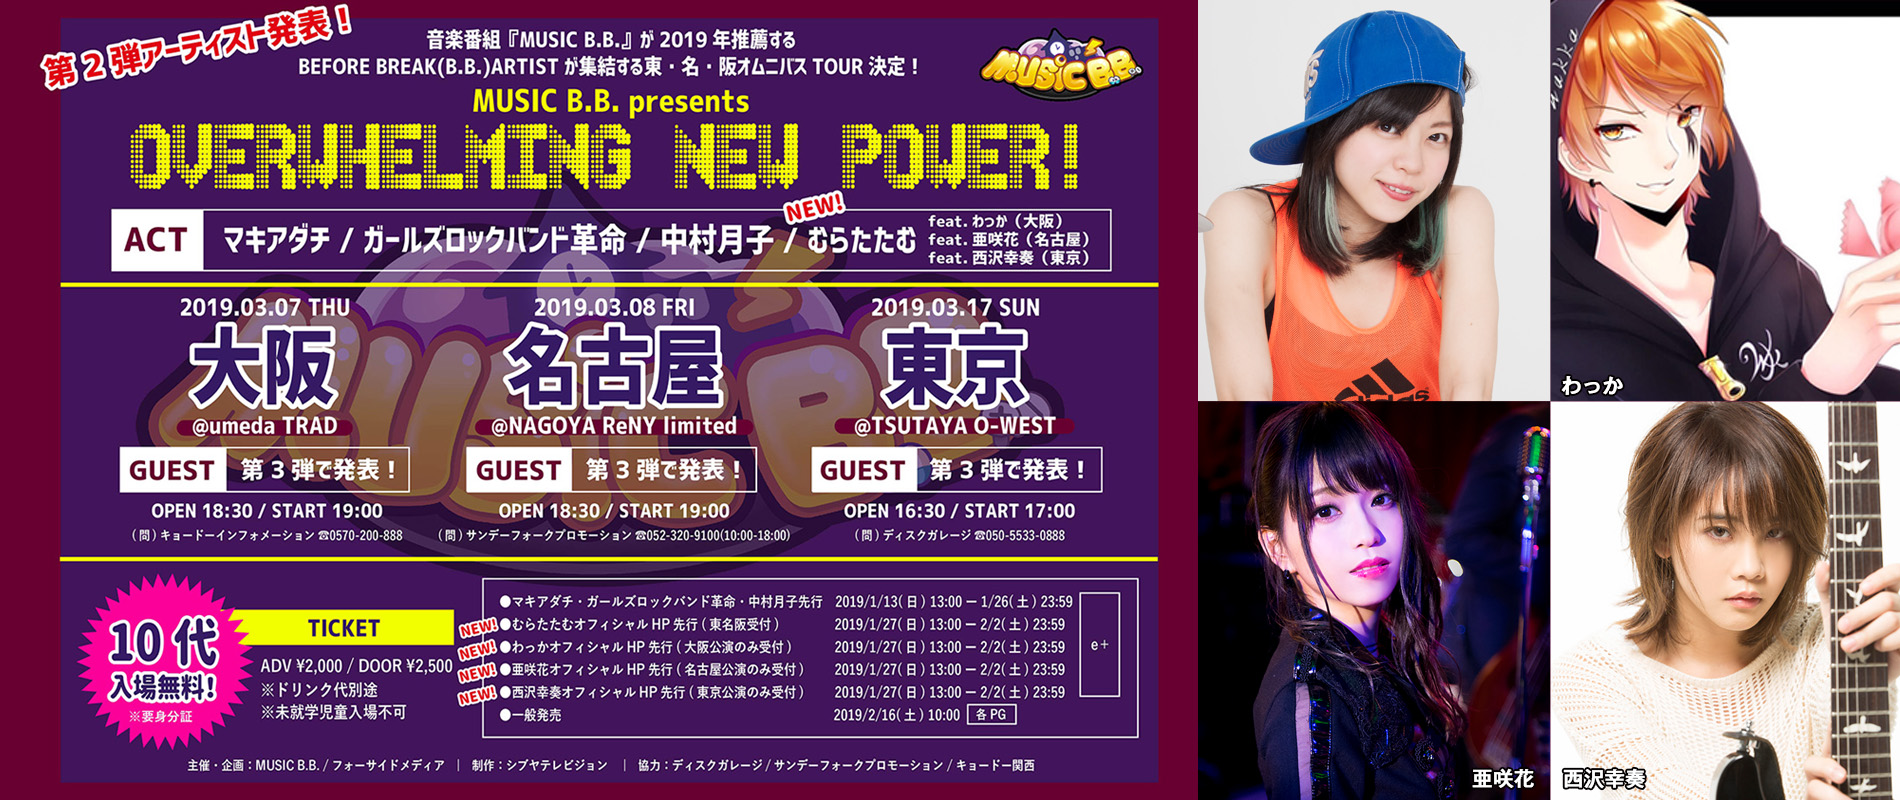 MUSIC B.B. presents OVERWHELMING NEW POWER!